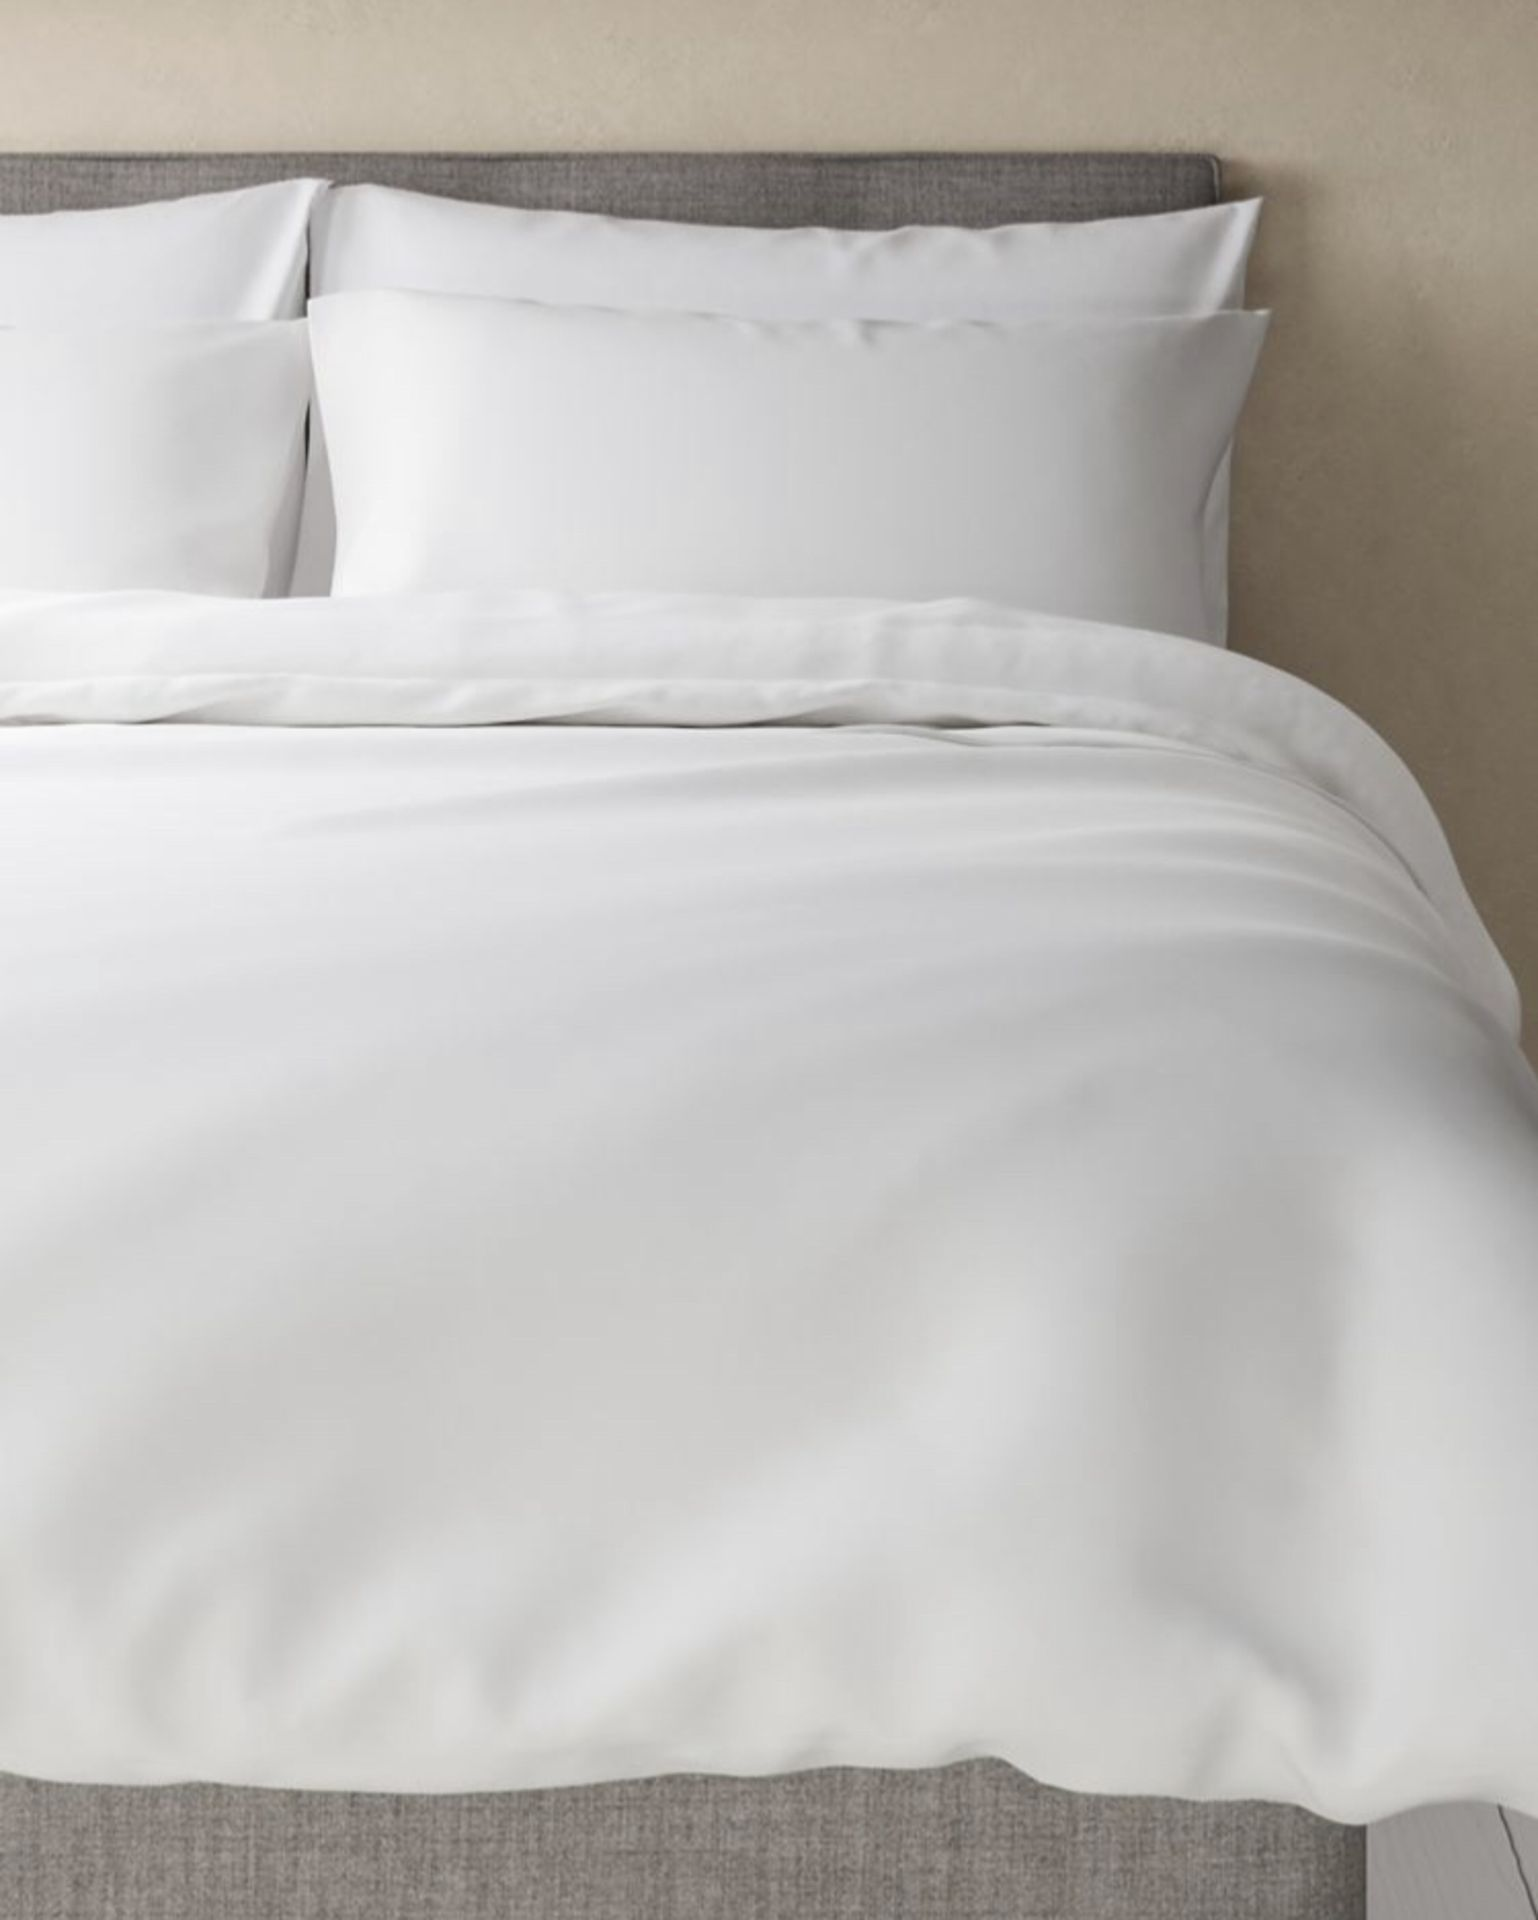 Lot 50 - Luxury Non-Iron Egyptian Cotton Duvet Cover, King Size